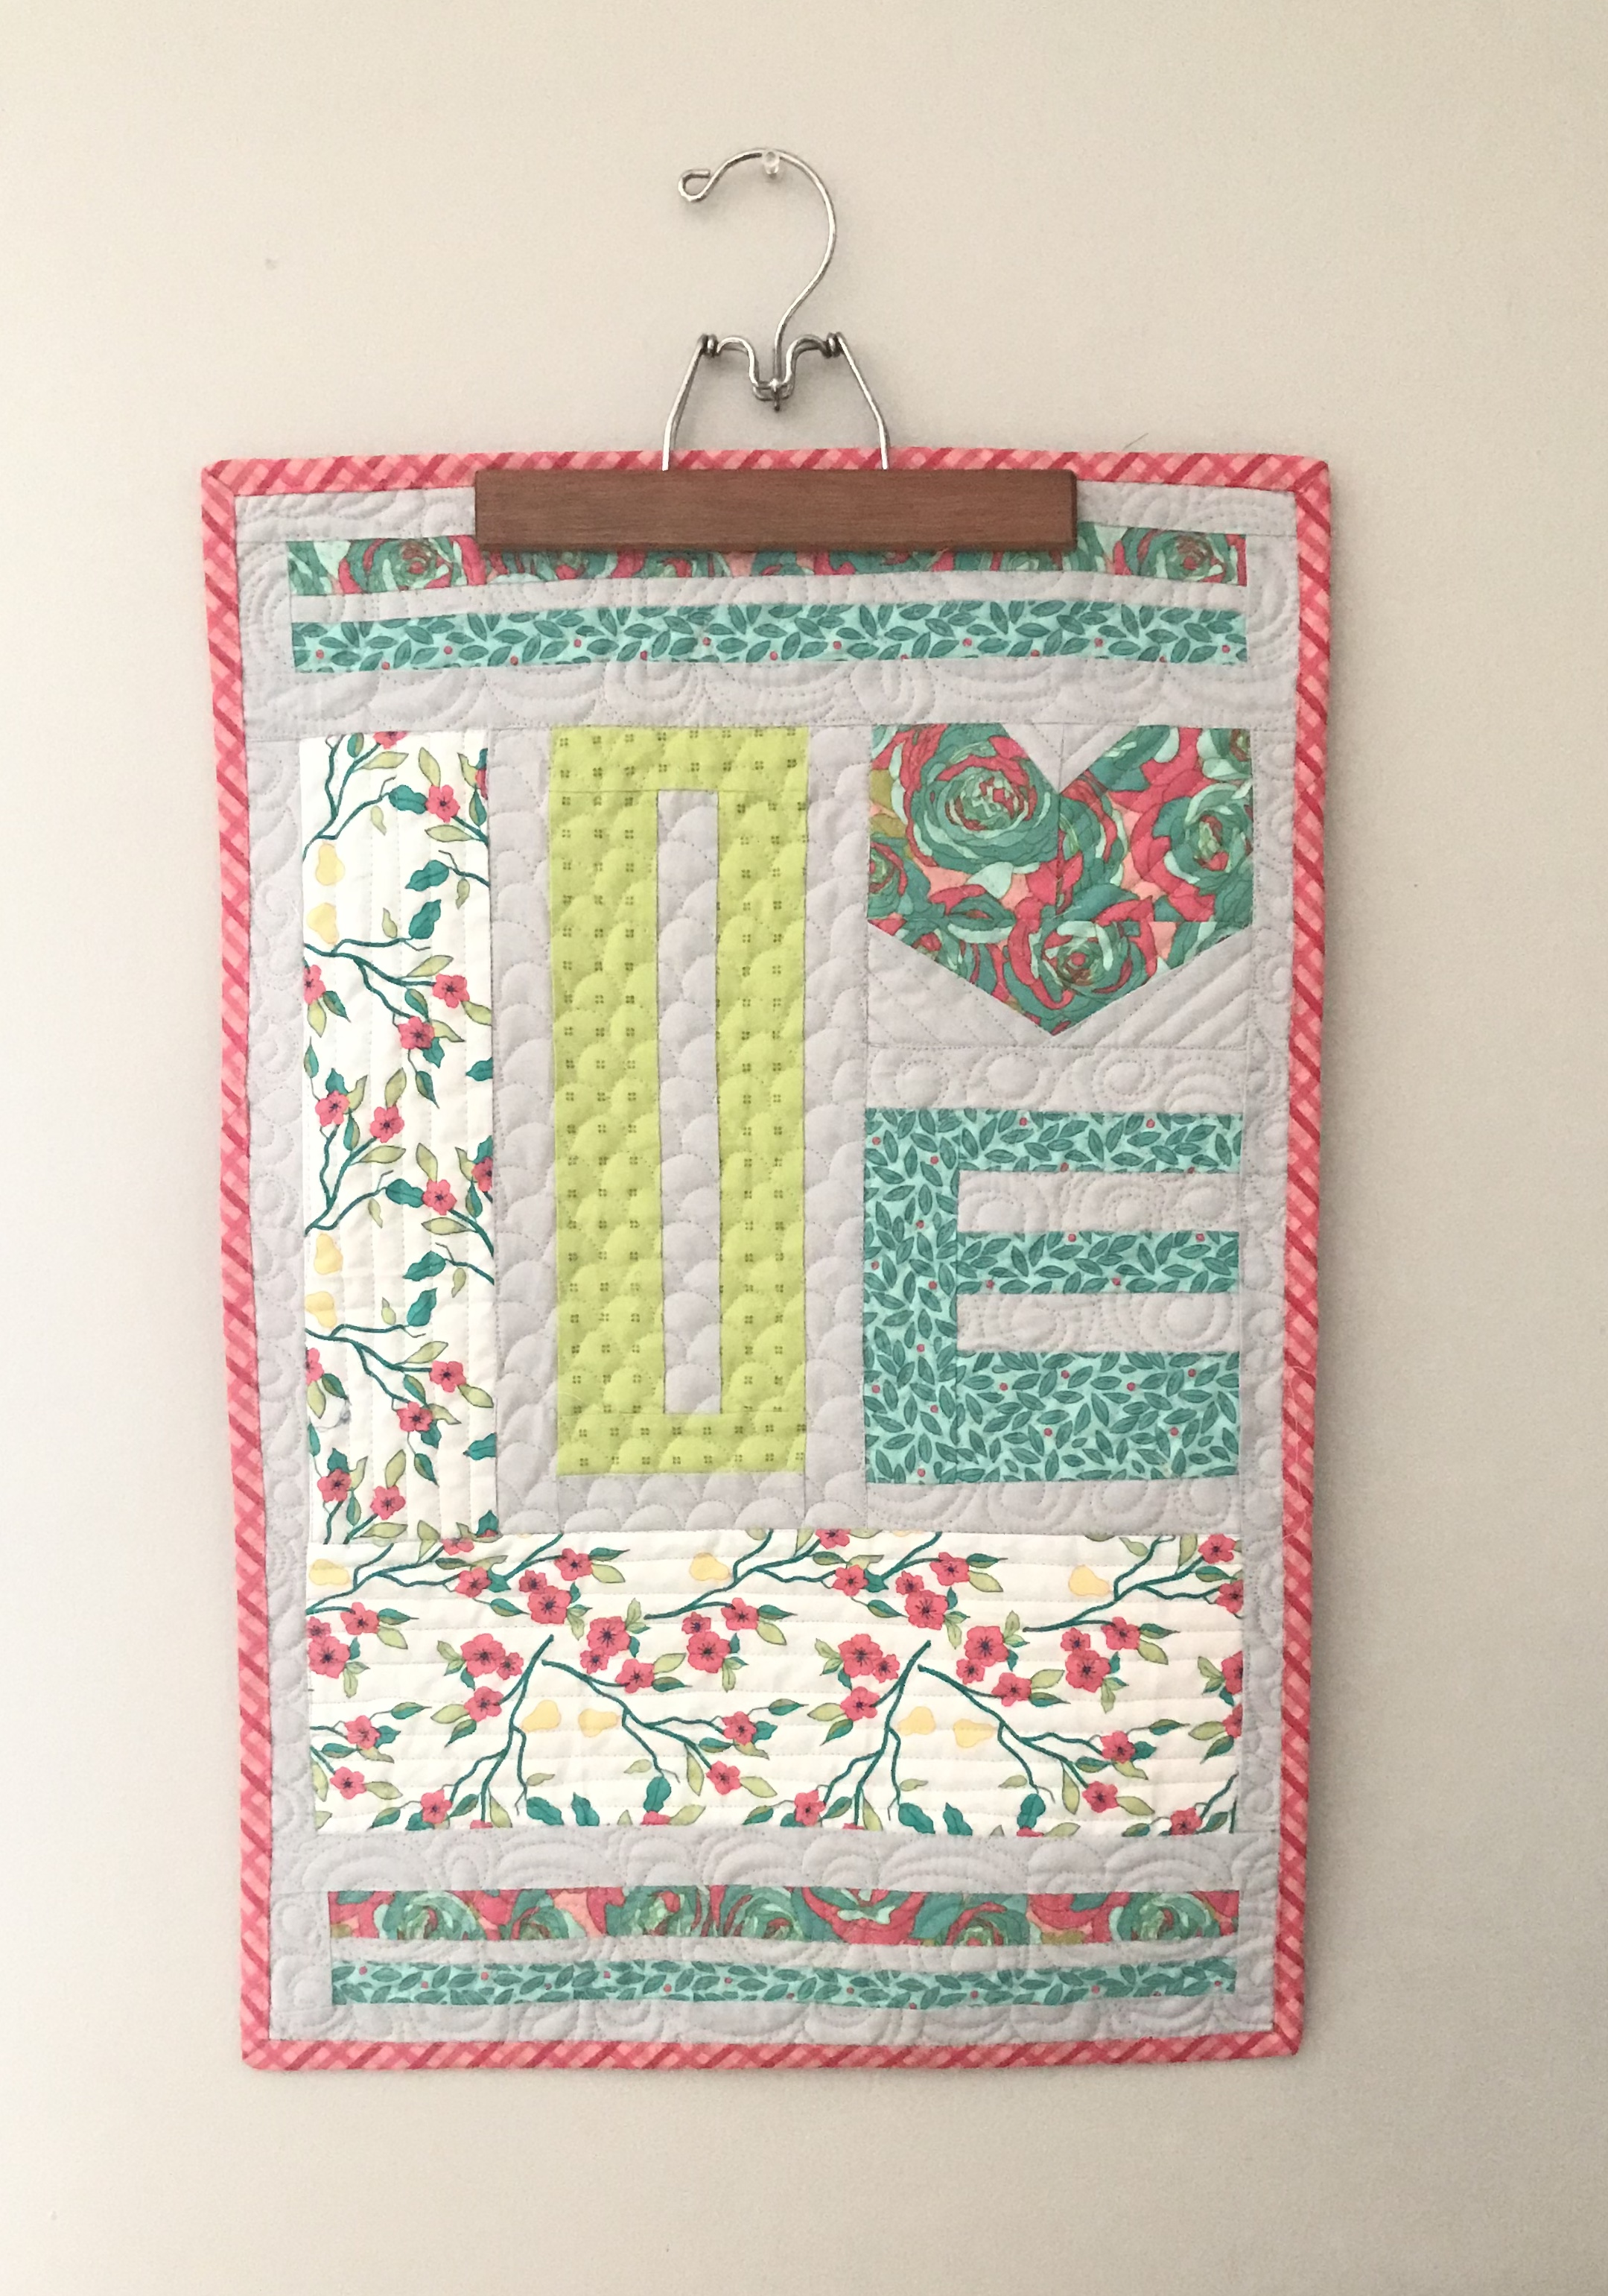 show love quilt; machine quilting; baptist fan; edge to edge; free hand; custom quilting; rainbow quilting